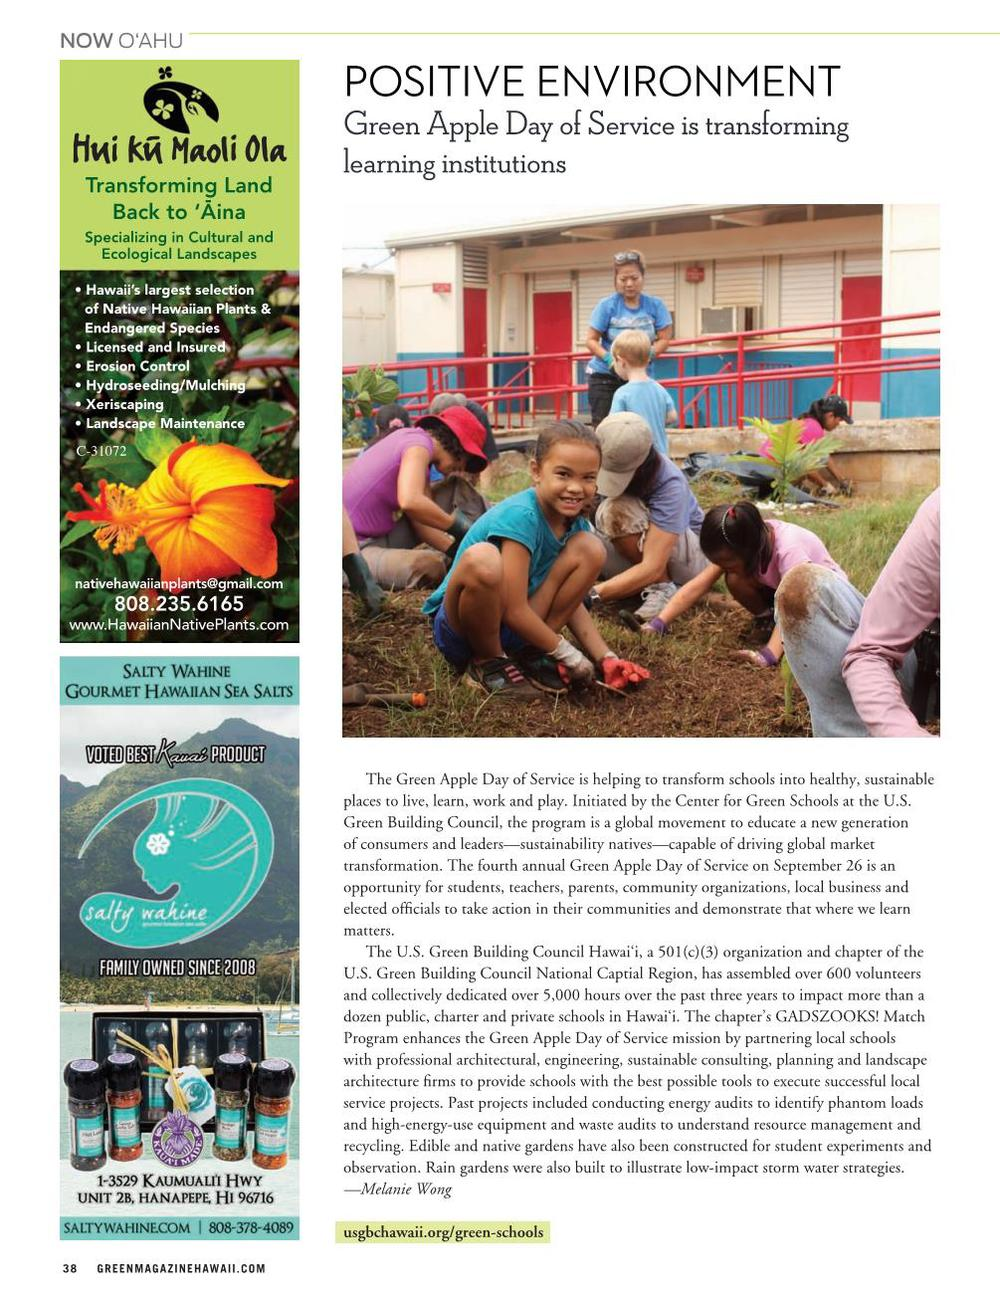 Green Magazine Article, Positive Environment, Green Apple Day of Service is transforming learning institutions